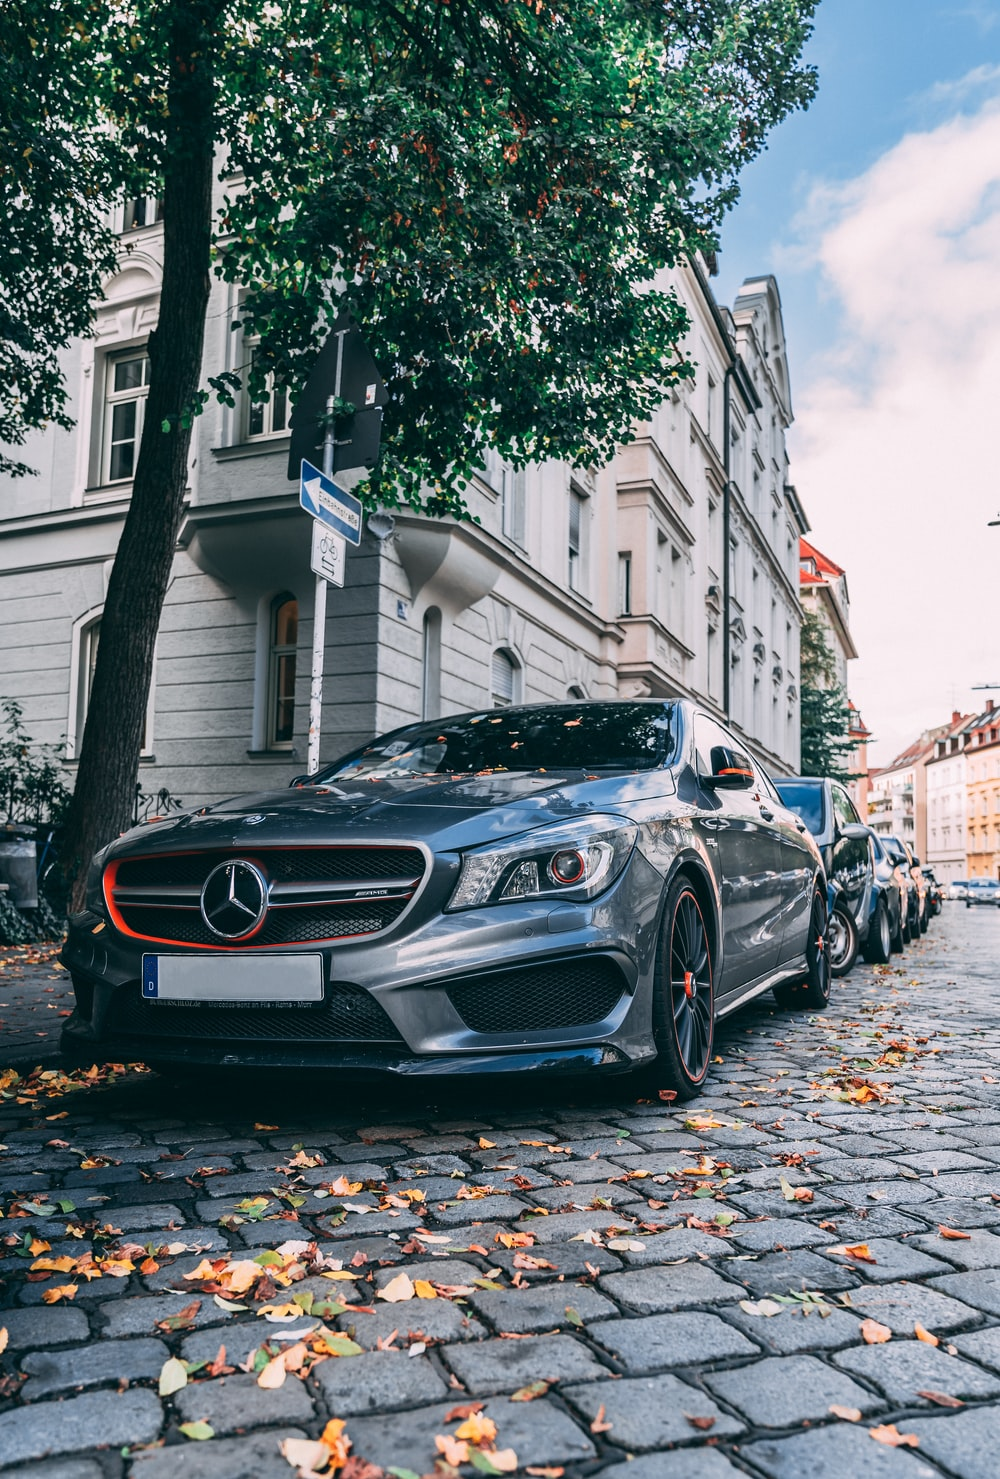 parked gray Mercedes car